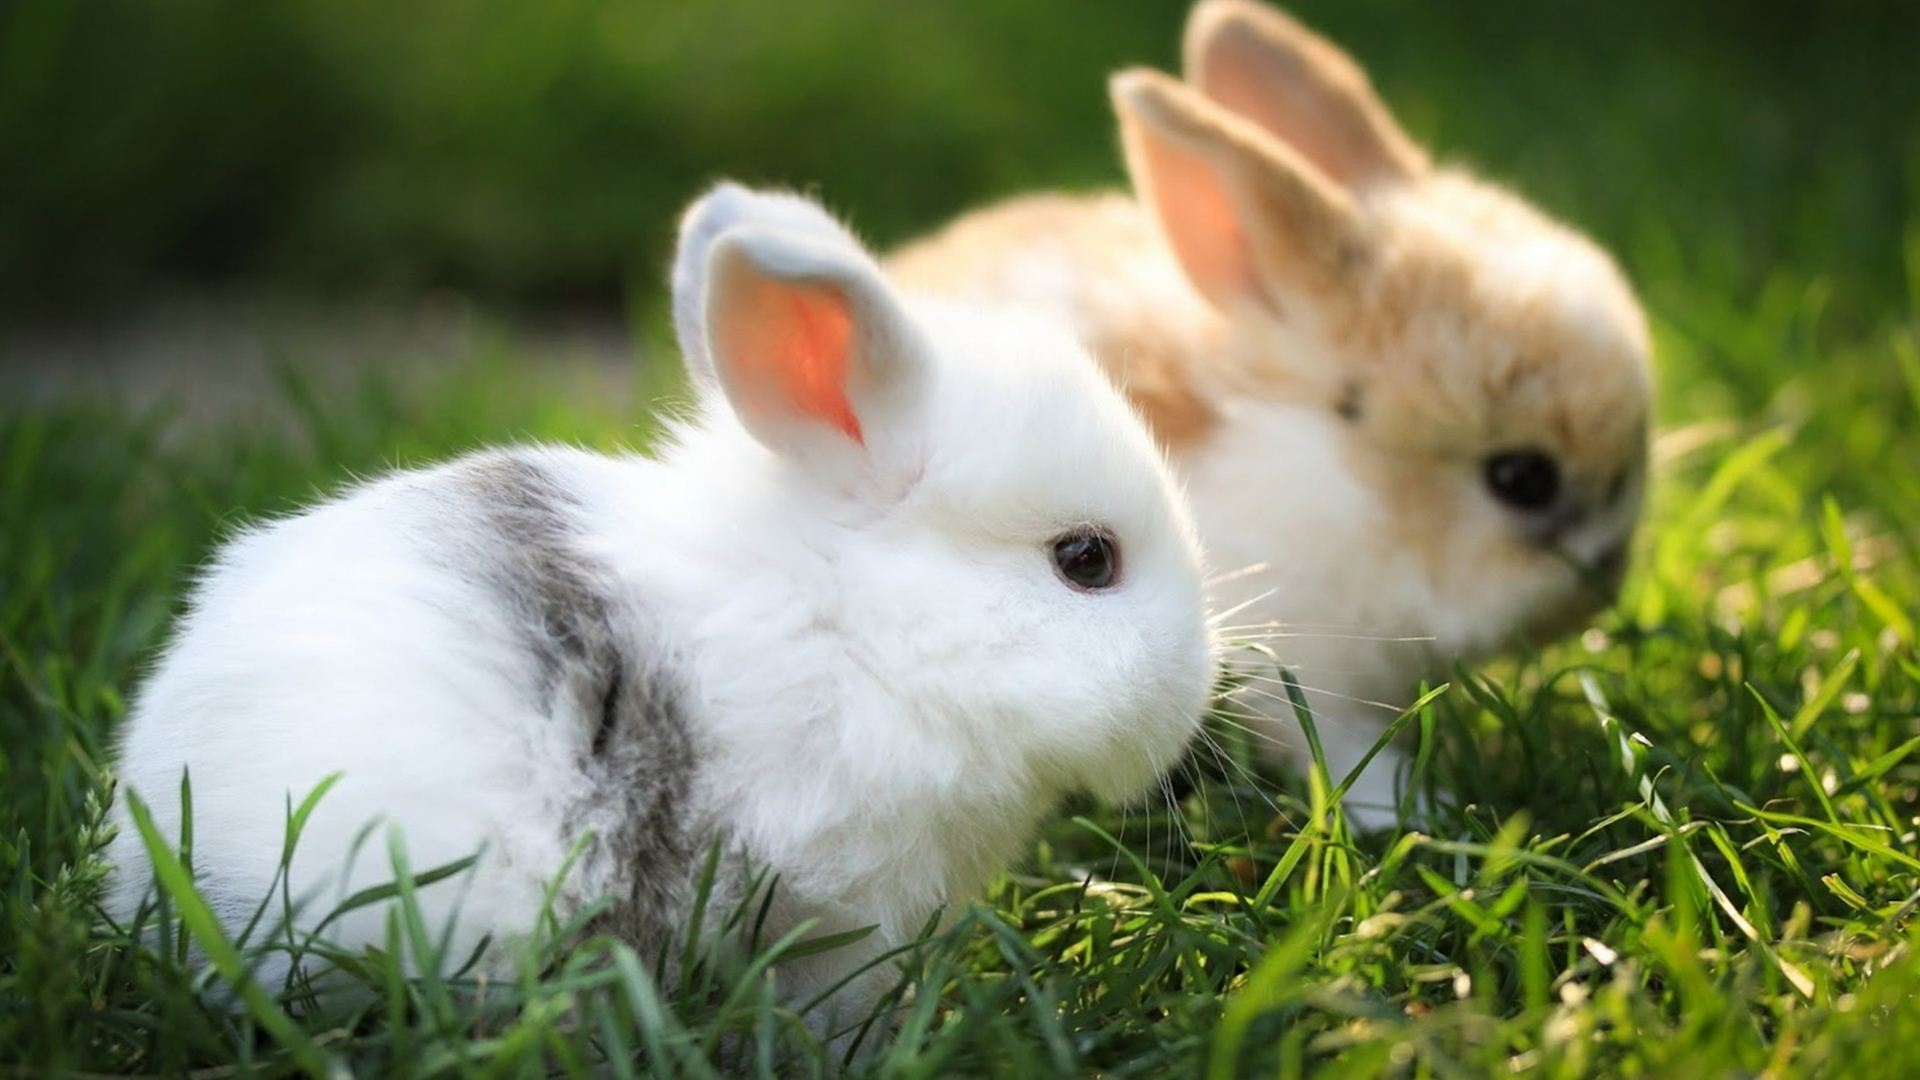 pictures of rabbits wallpapers (55 wallpapers) – adorable wallpapers